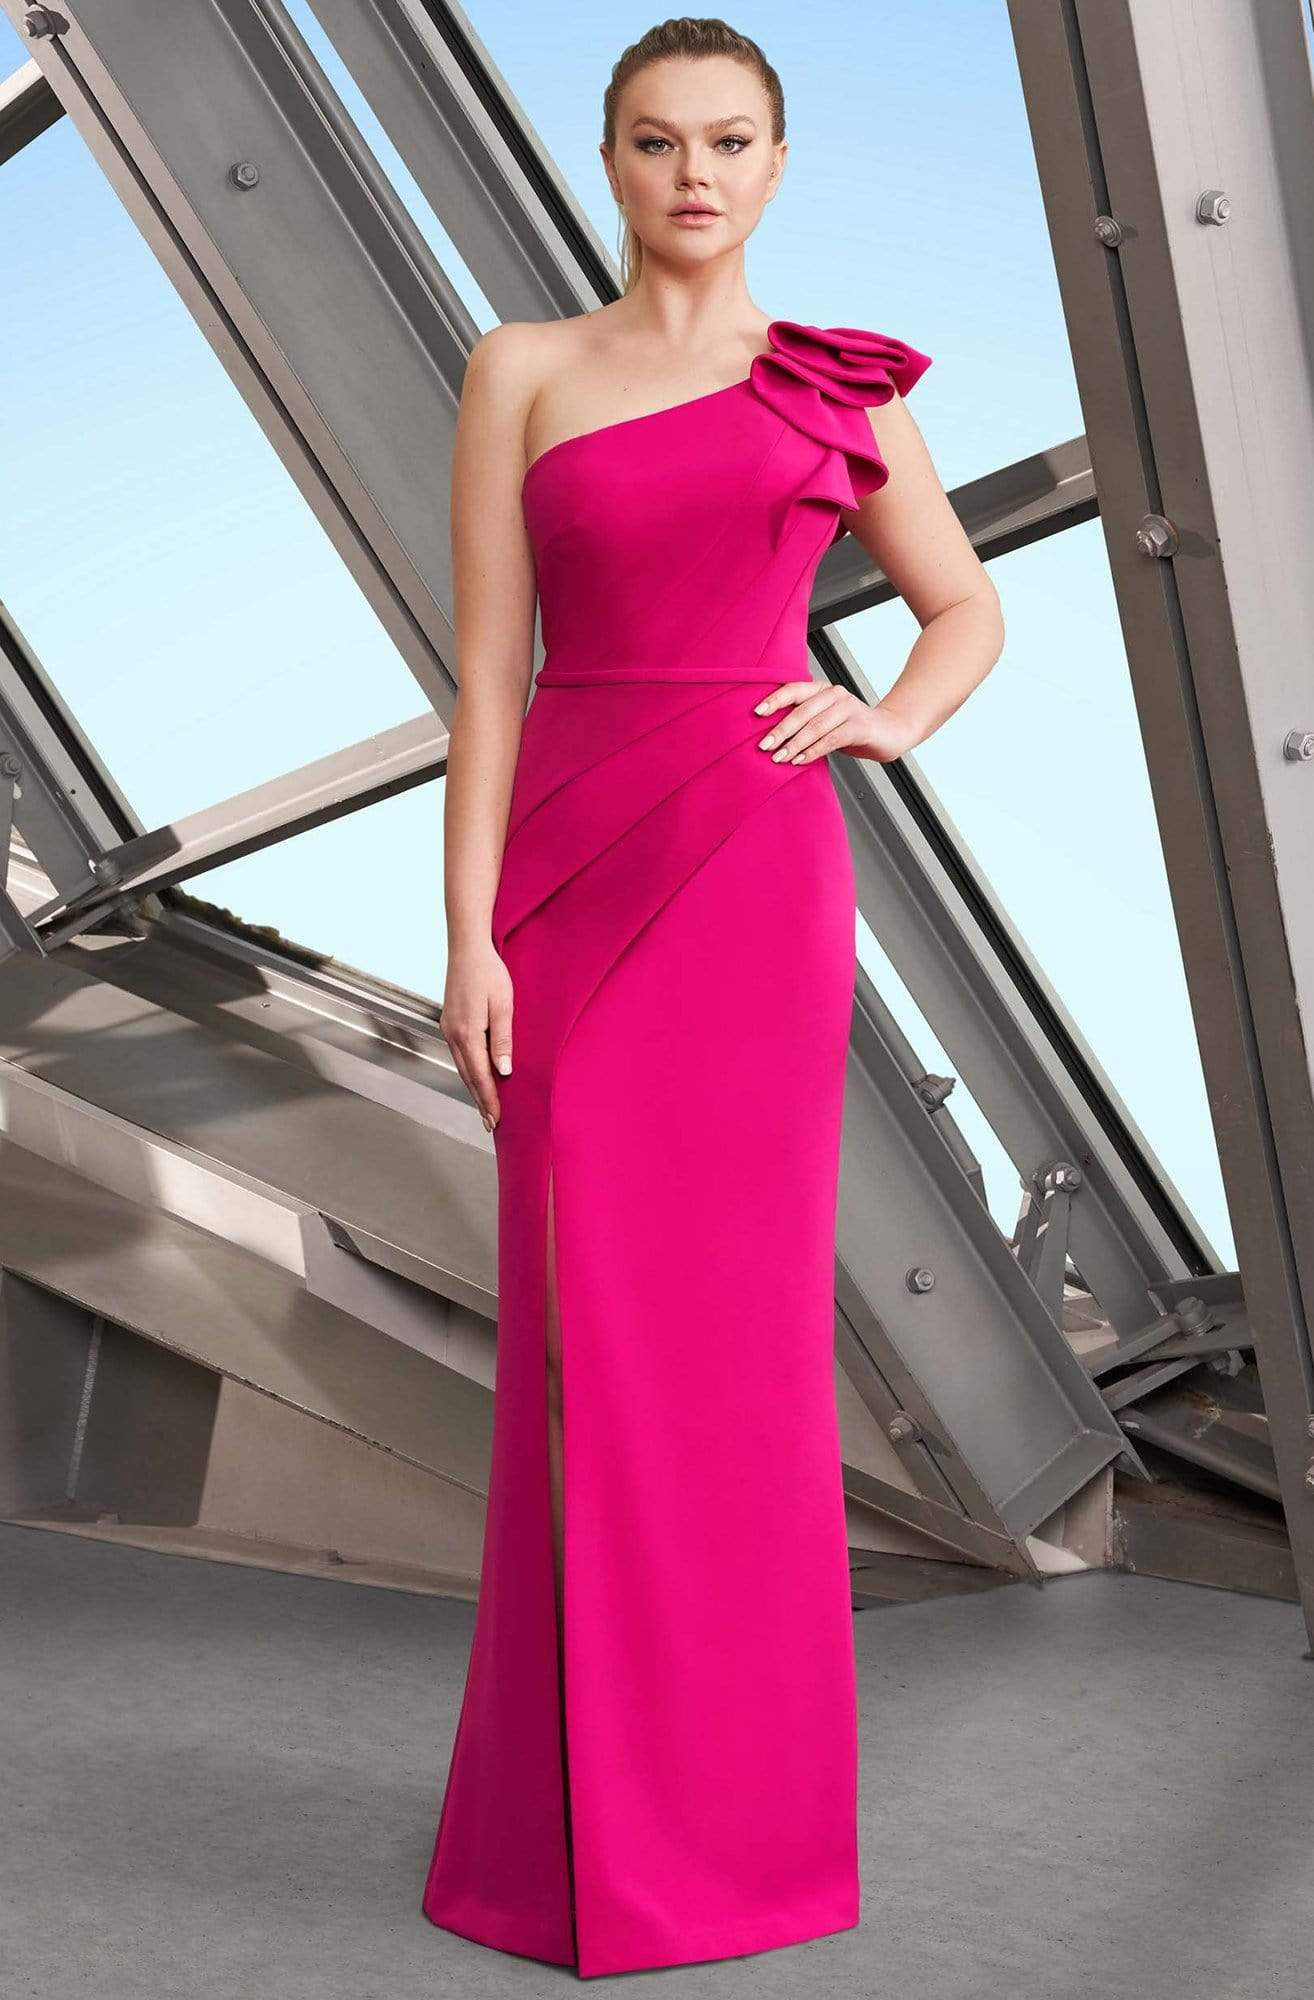 Alexander by Daymor - 1174 Asymmetric Ruffled One Shoulder Long Sheath Gown from Alexander By Daymor